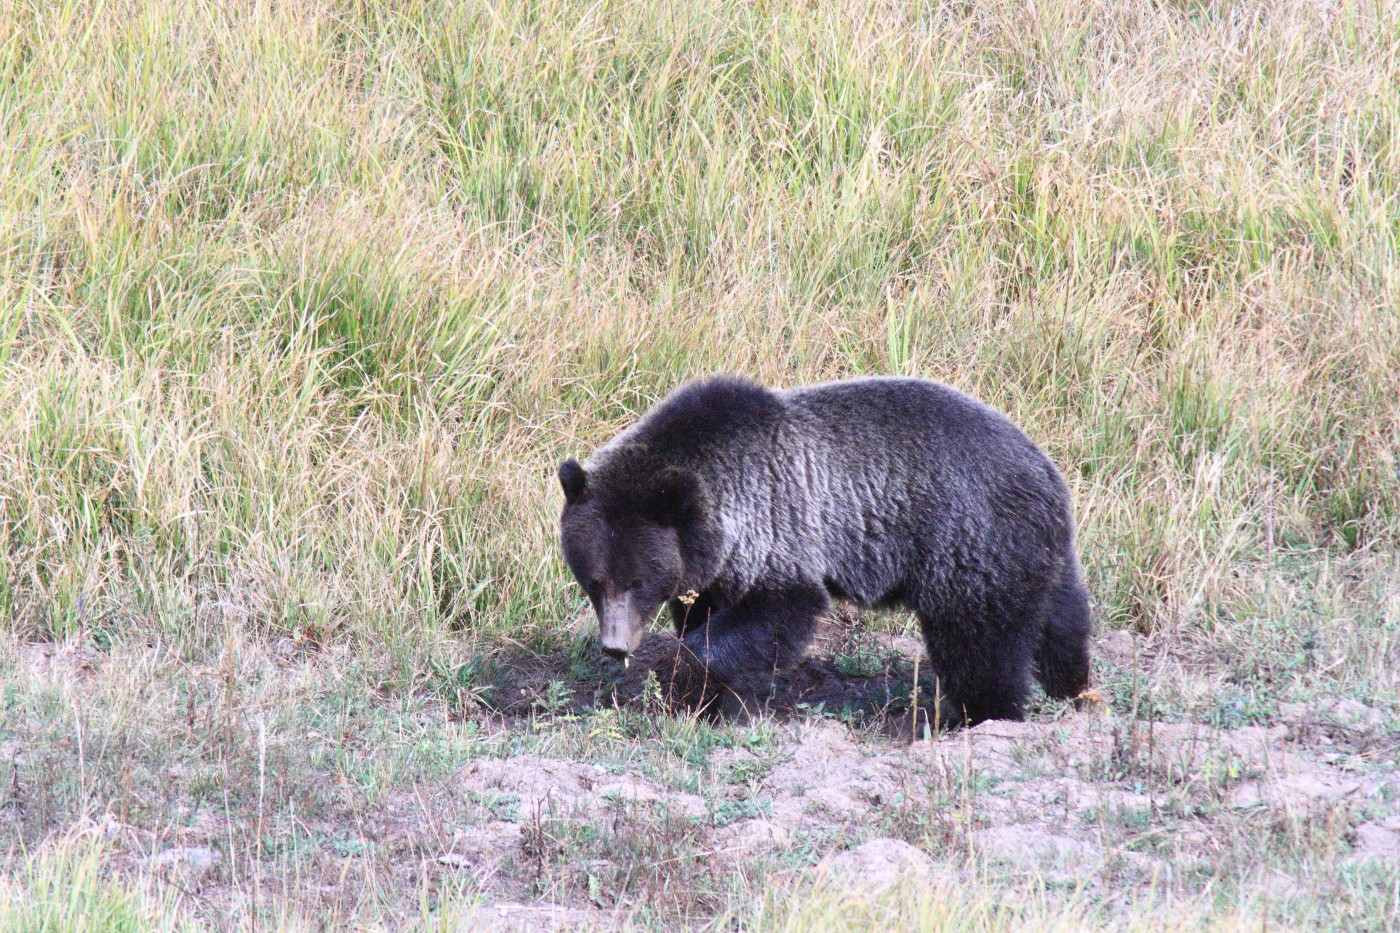 foraging grizzly bear hayden valley yellowston szulecki joshua